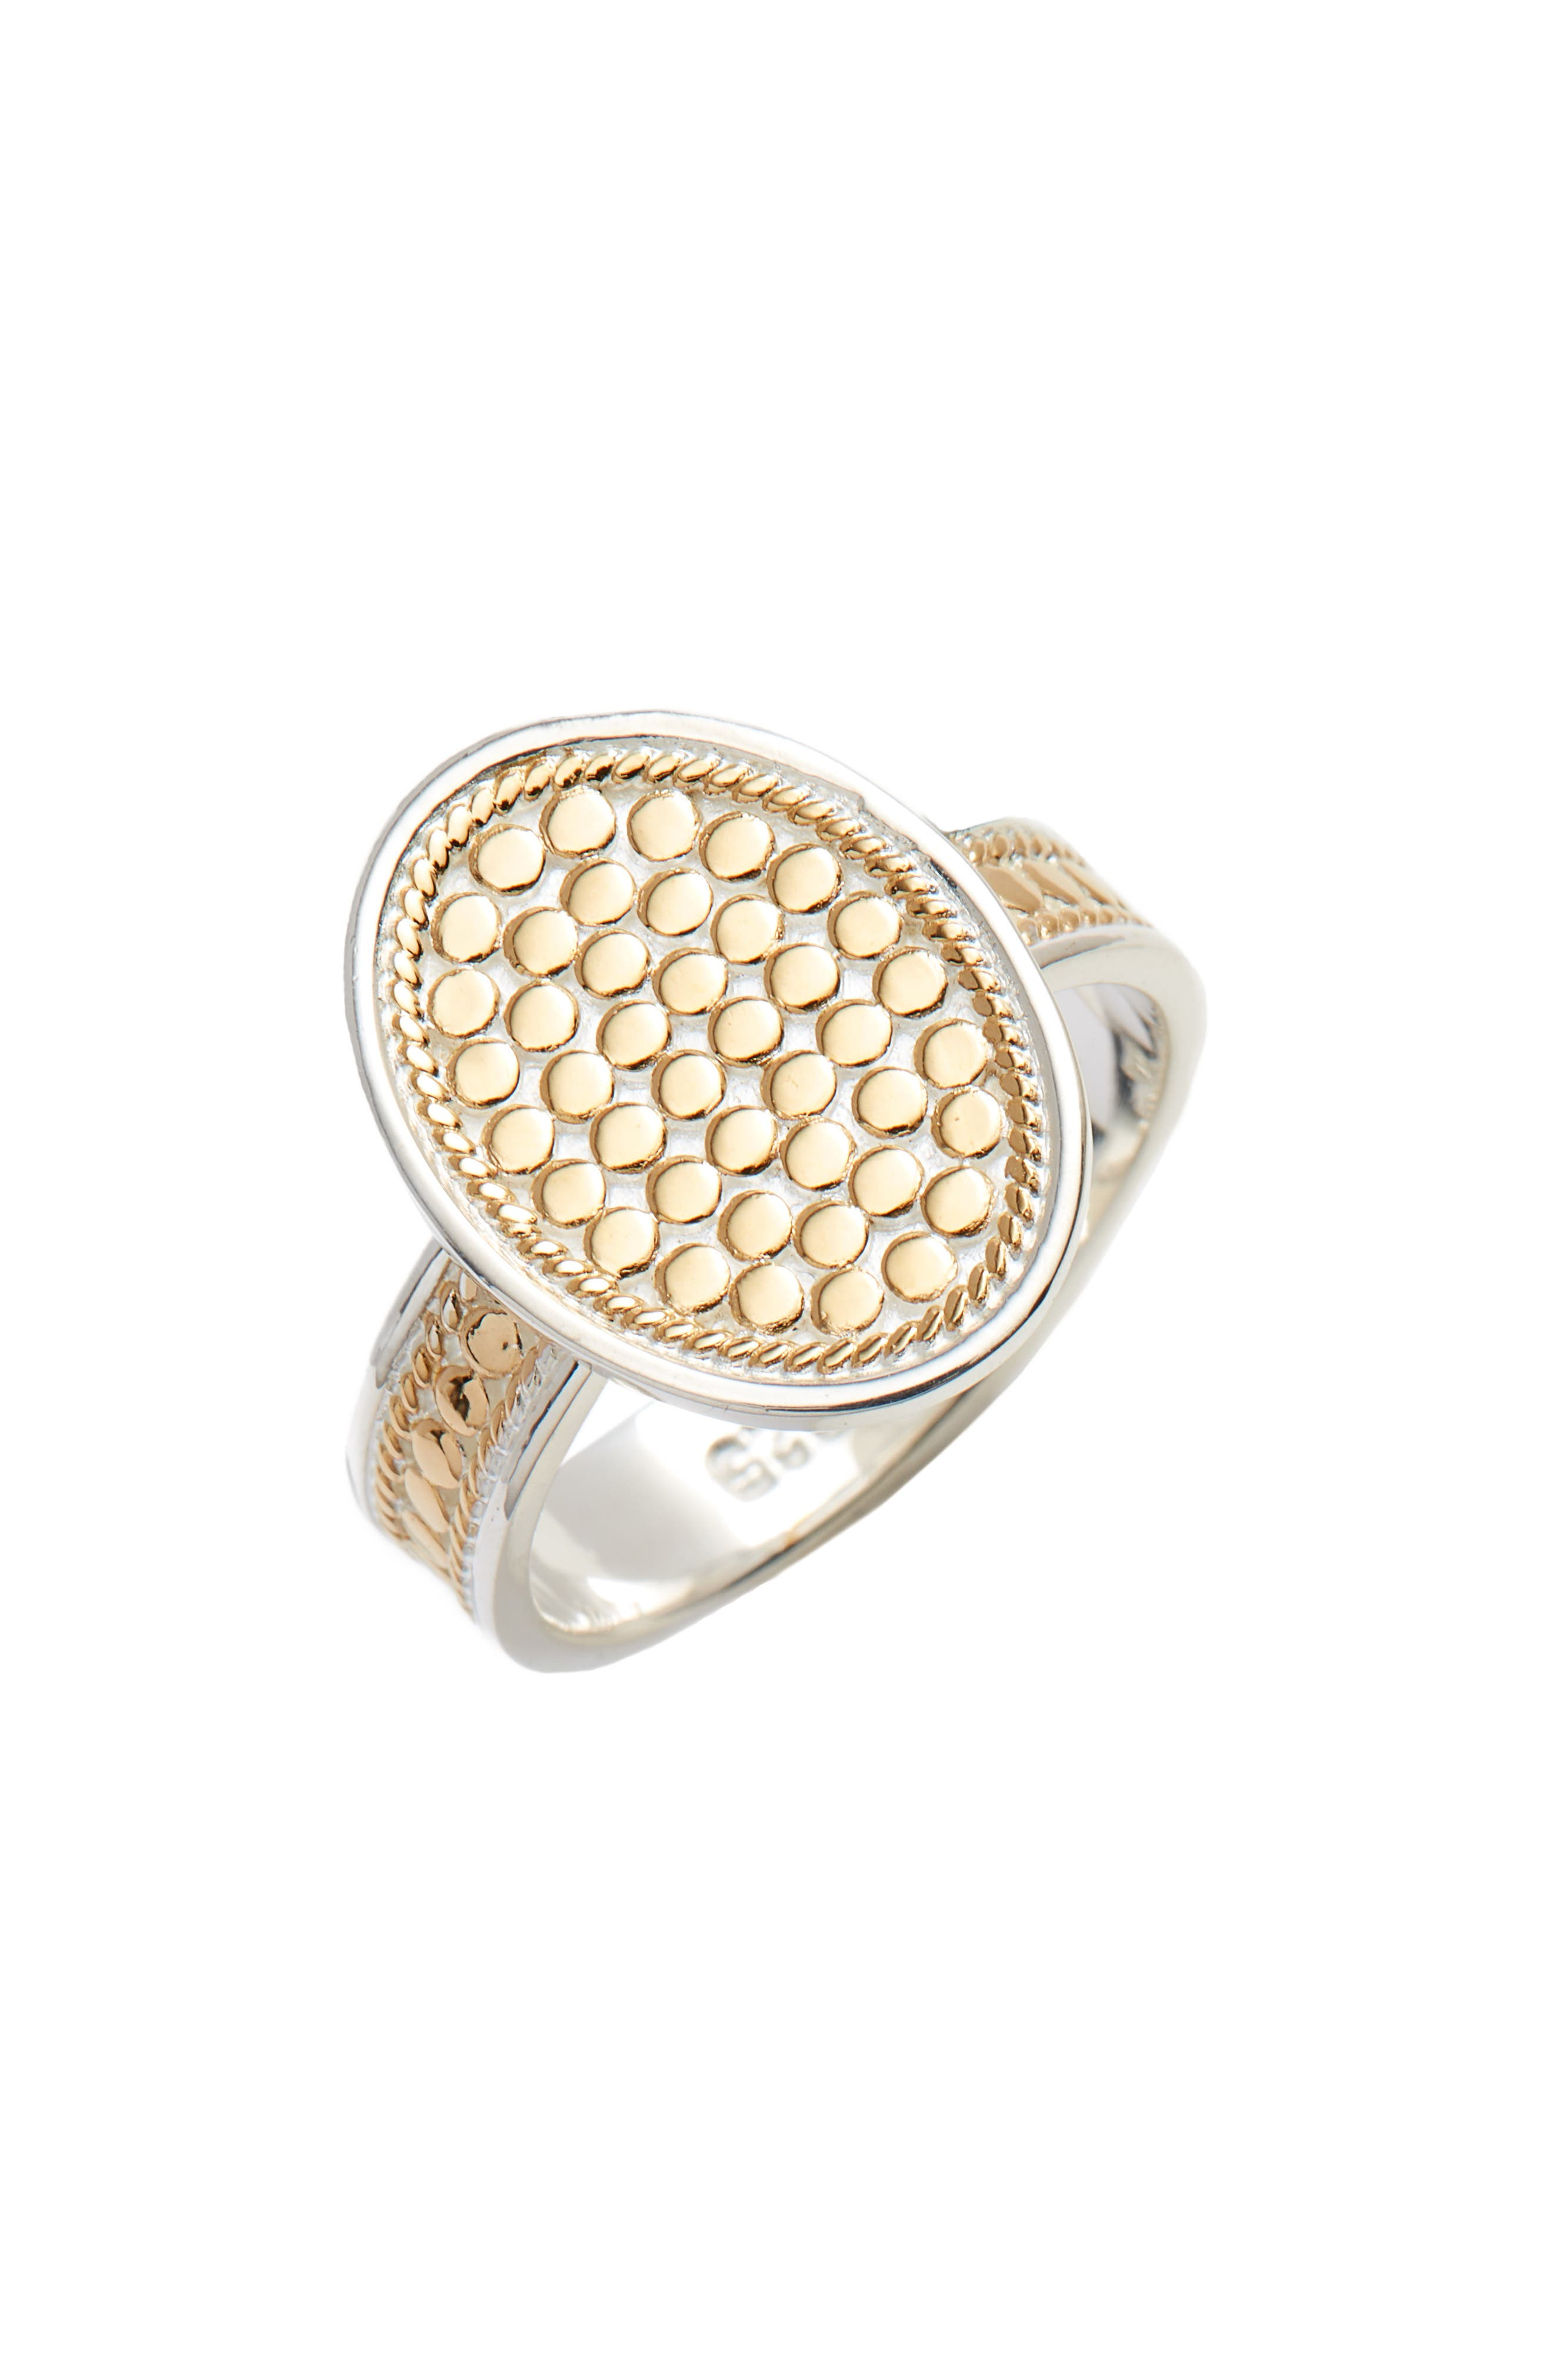 OVAL SKINNY BAND RING